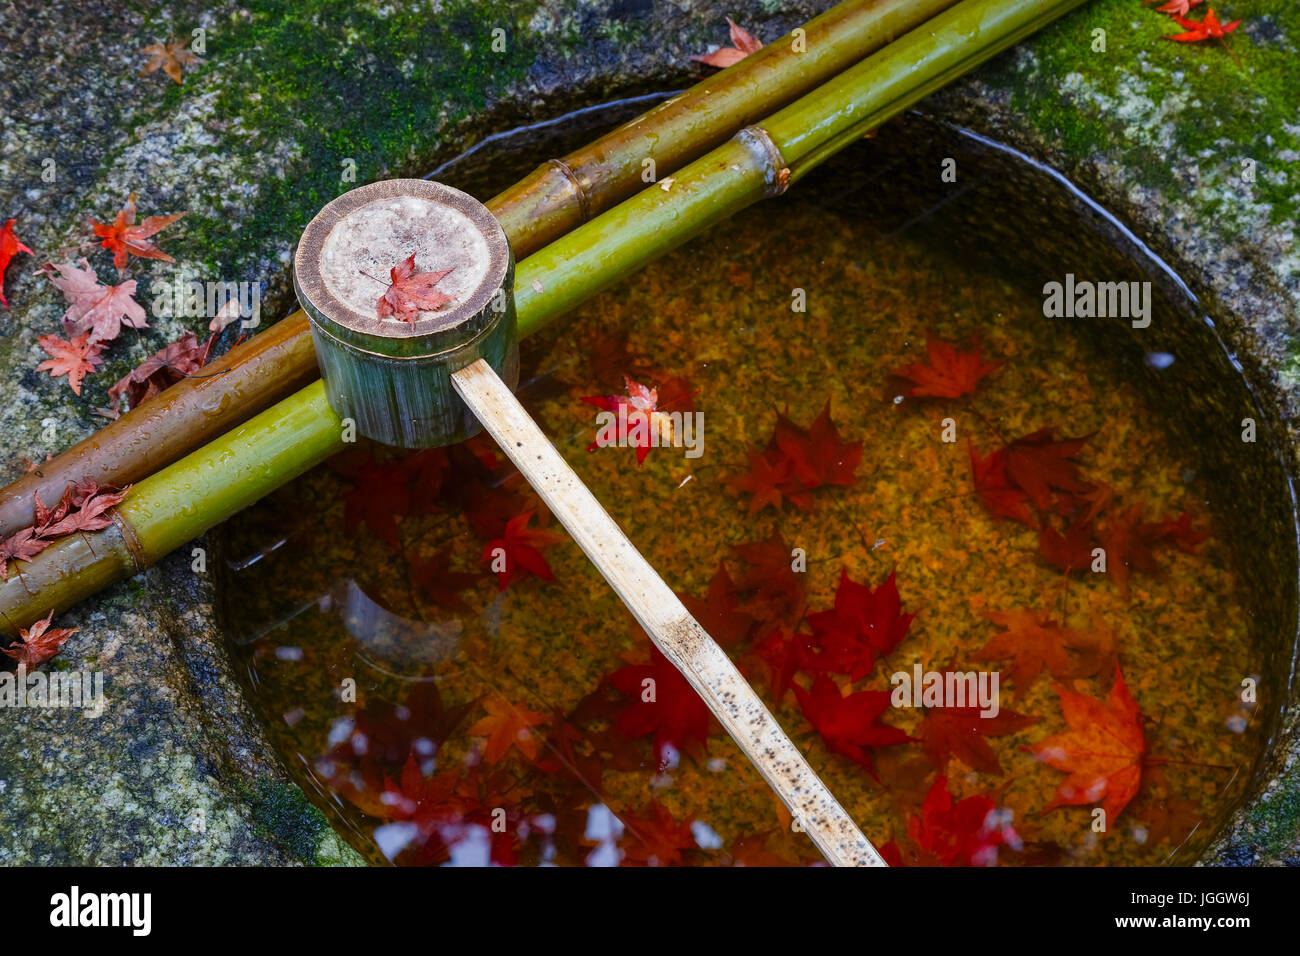 Water dipper on a stone basin at Koto-in Temple in Kyoto, Japan - Stock Image